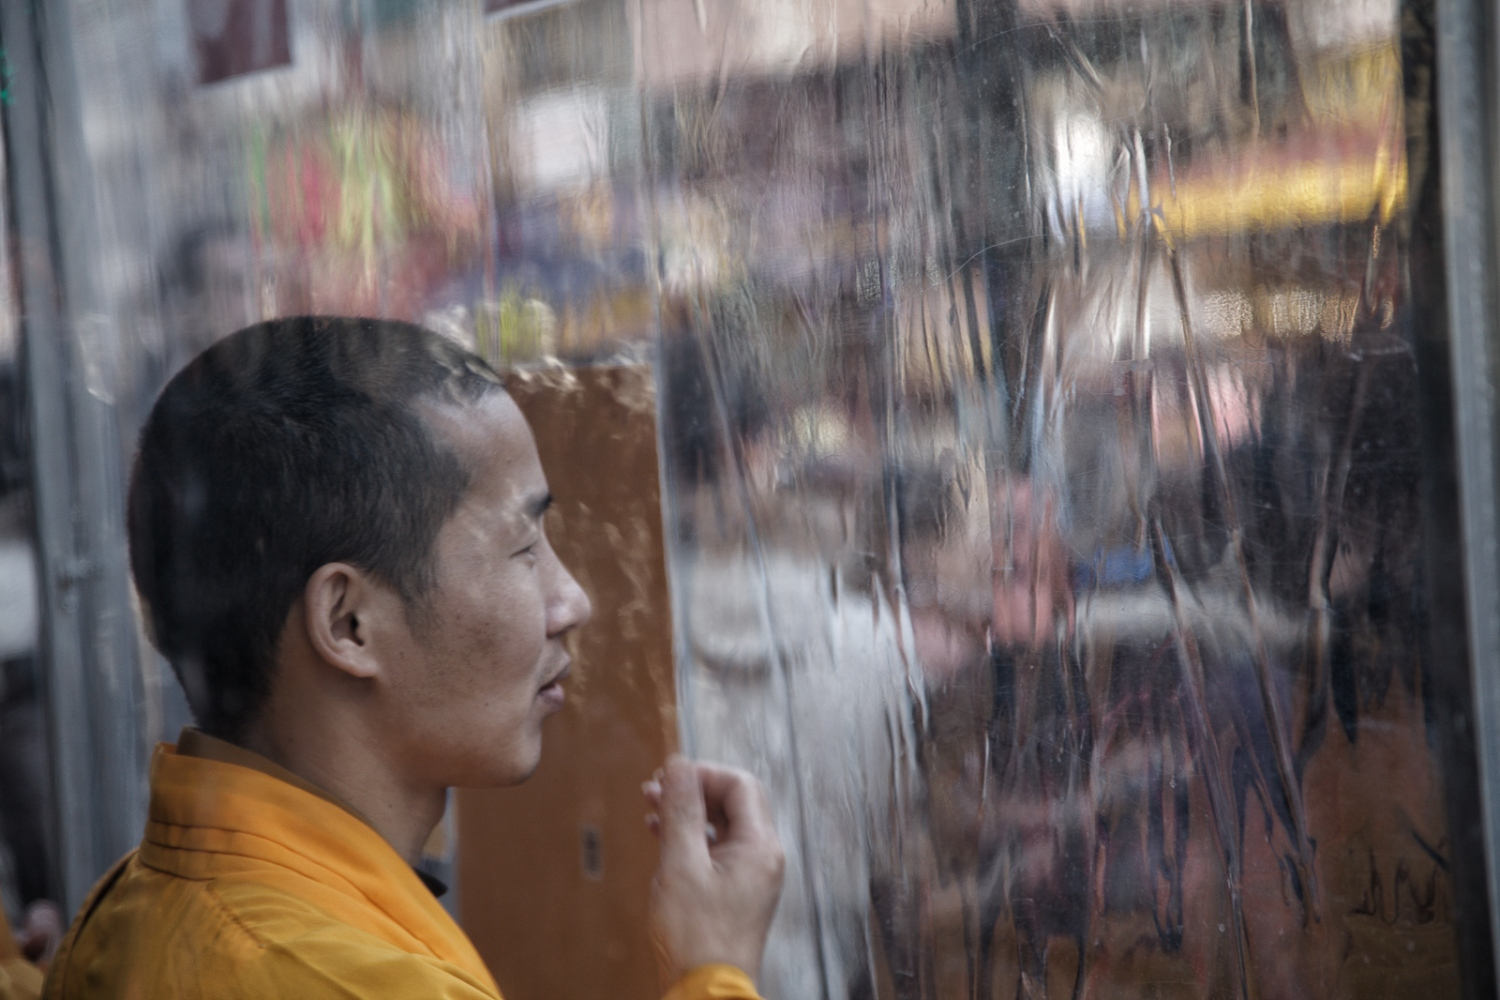 Buddhist monk surveys Canal Street on a rainy day.